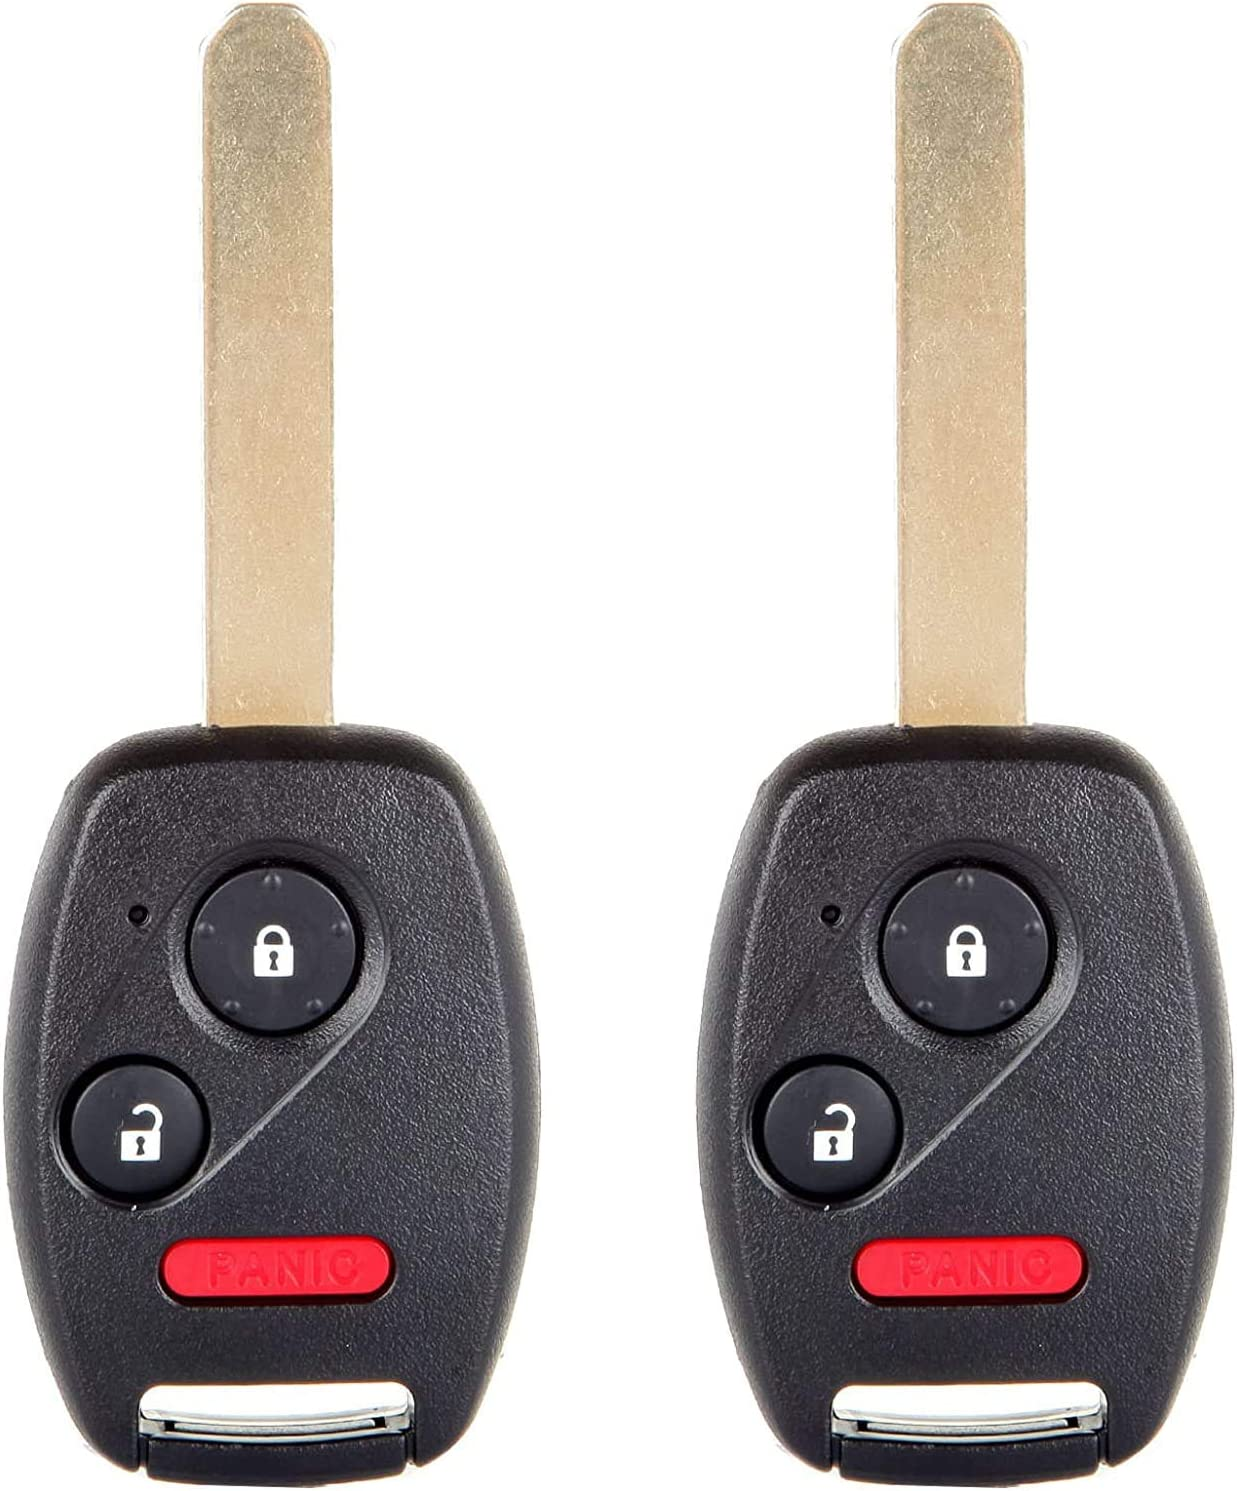 2+1 Buttons 433 Mhz CWTWB1U545 ID46//PCF7936 Chip Fob Keyless Entry Car remote key for Honda Pilot 2005-2008 Auto Parts 2 Pack